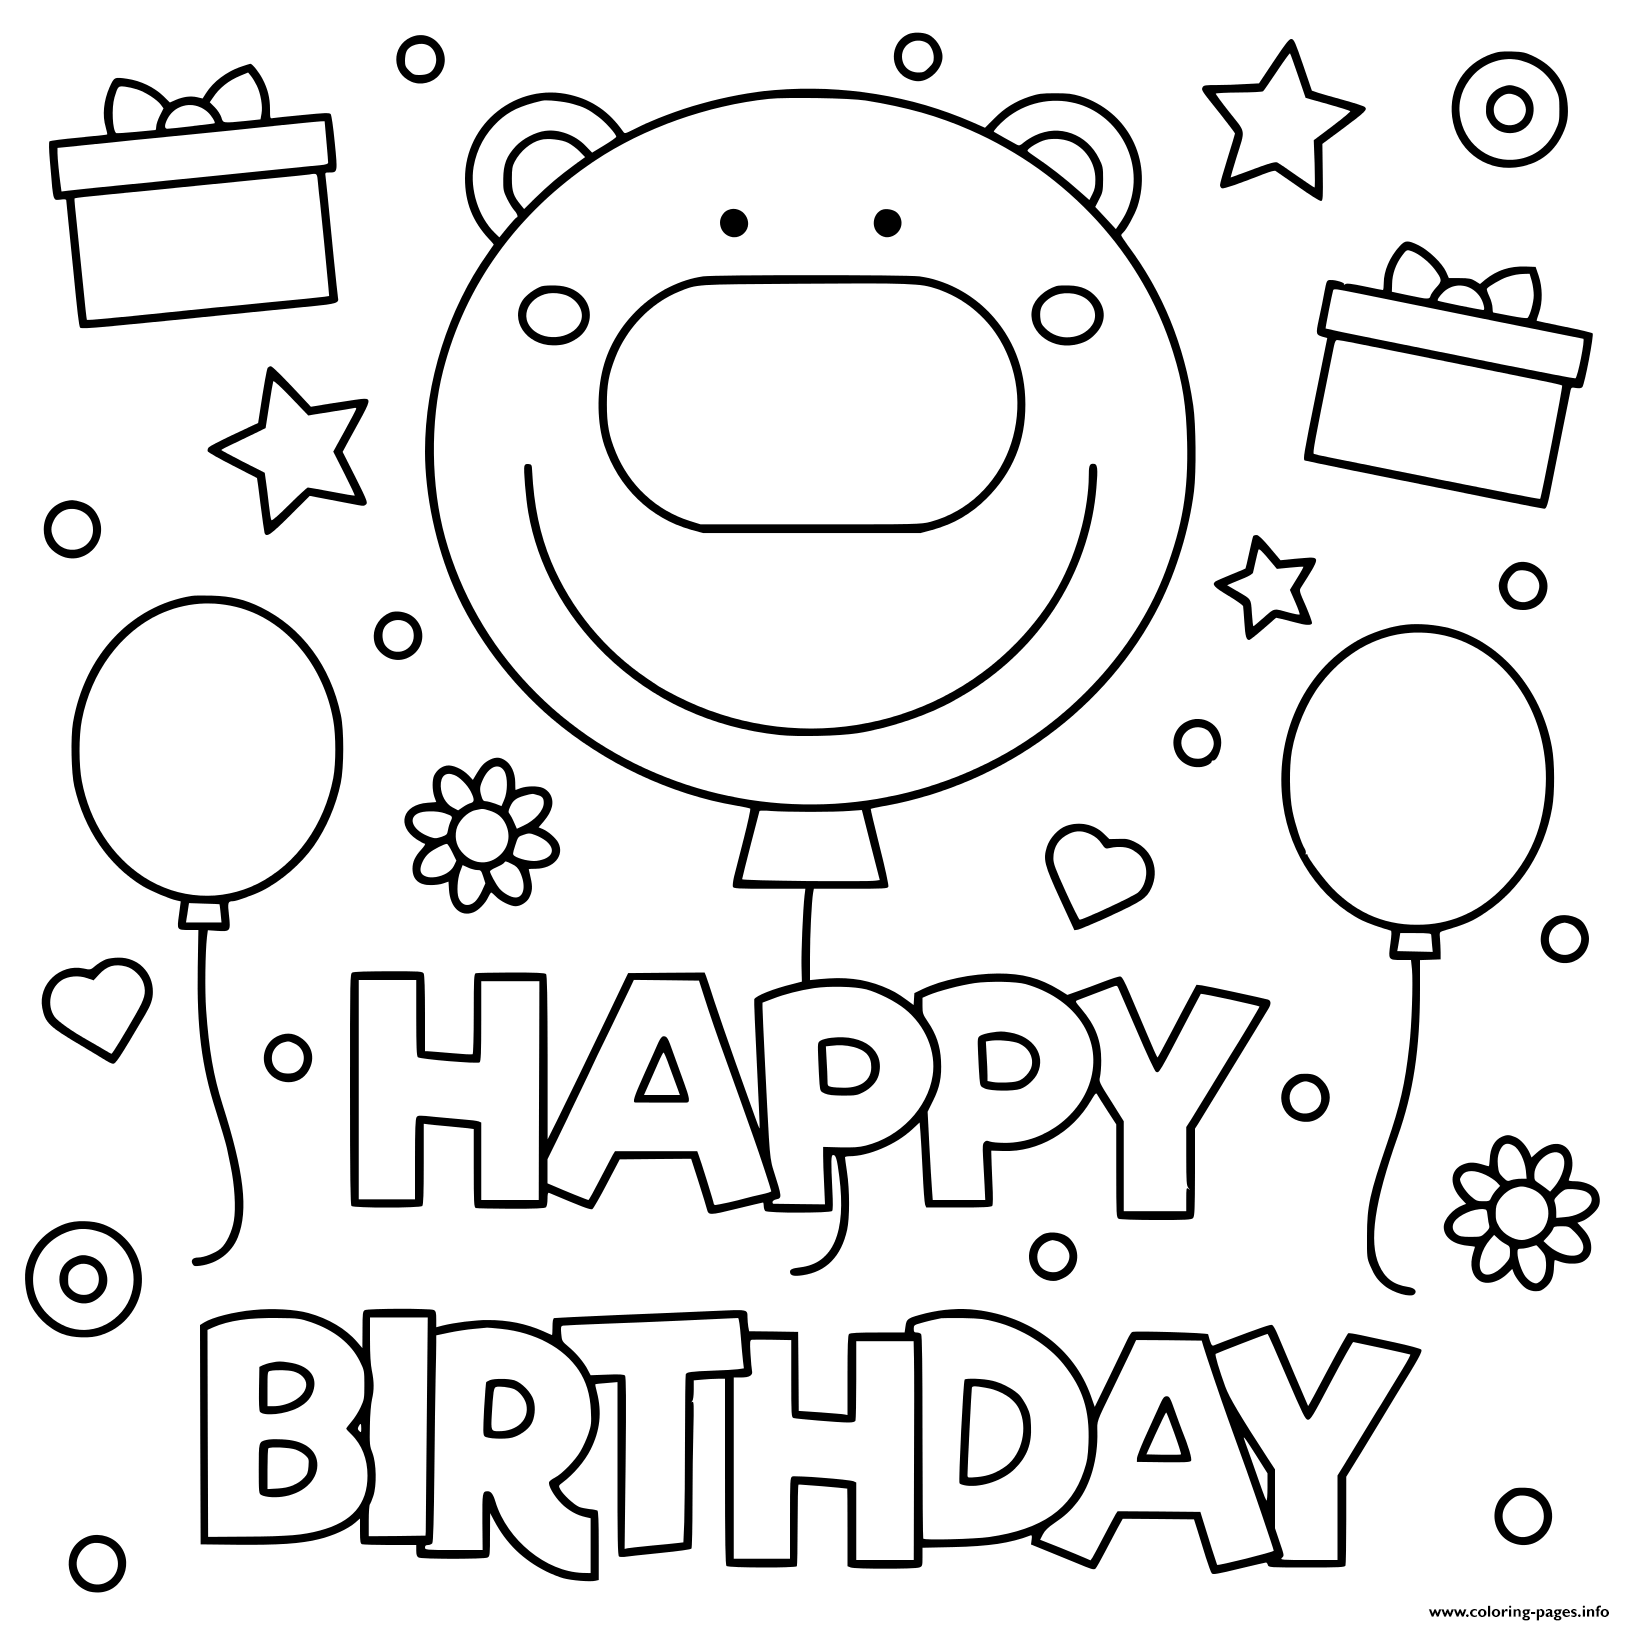 Happy Birthday Smile Kids Illustration Coloring Pages ...